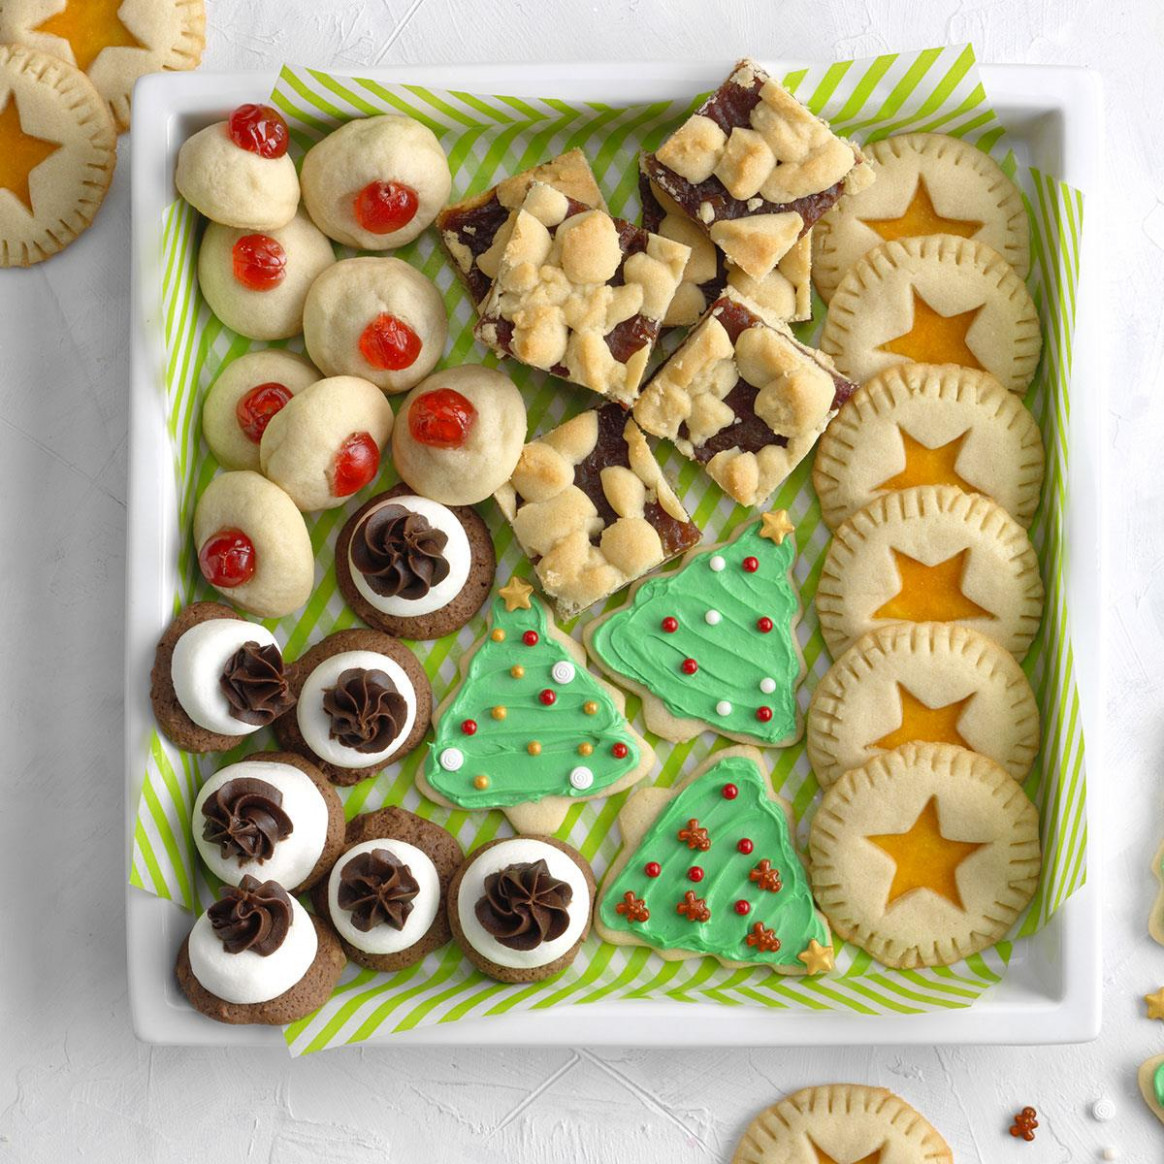 Taste of Home: Find Recipes, Appetizers, Desserts, Holiday ..